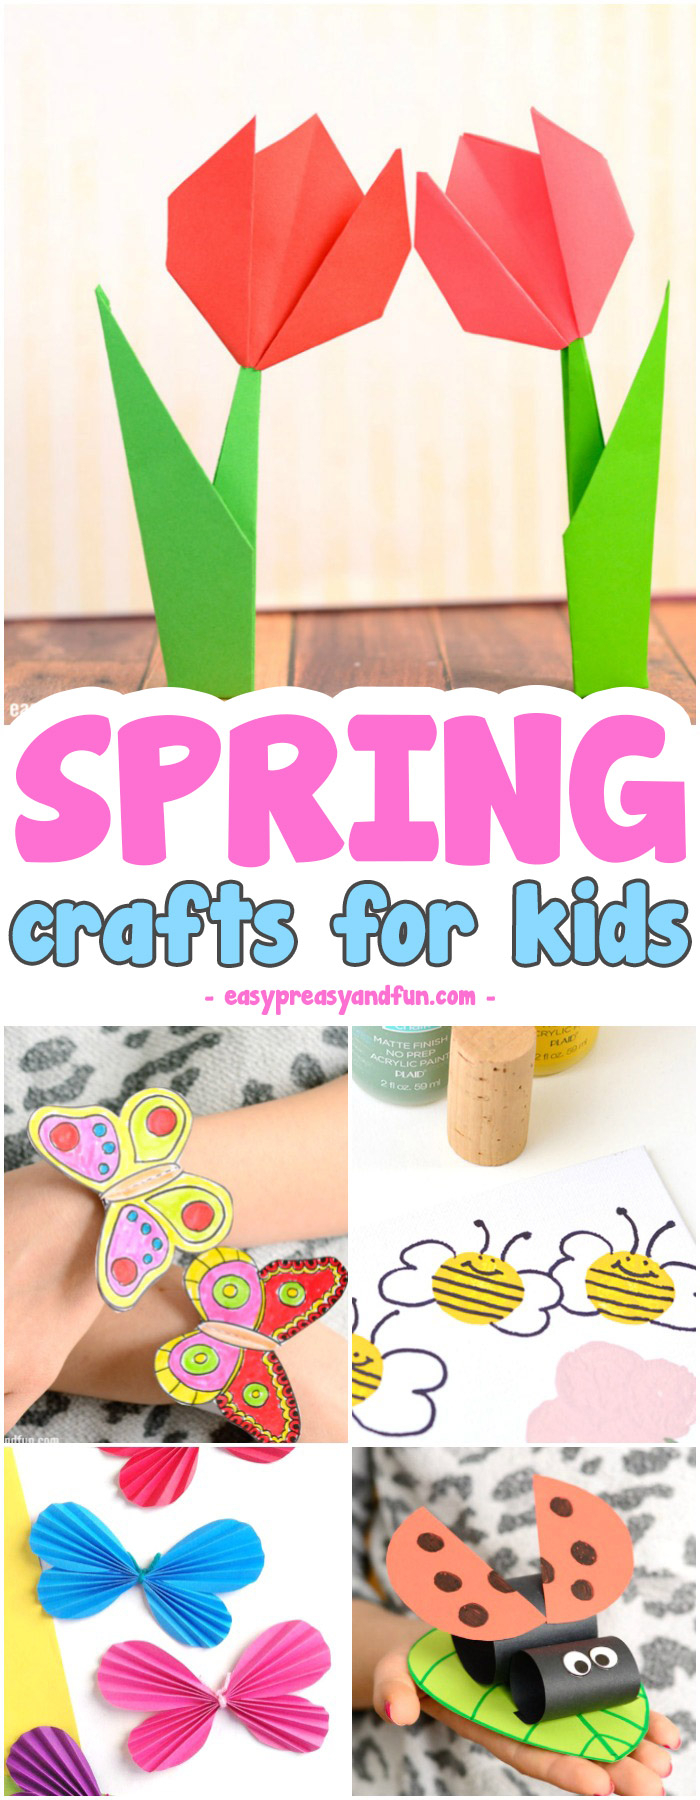 10 Unique Ideas For Crafts For Kids spring crafts for kids art and craft project ideas for all ages 6